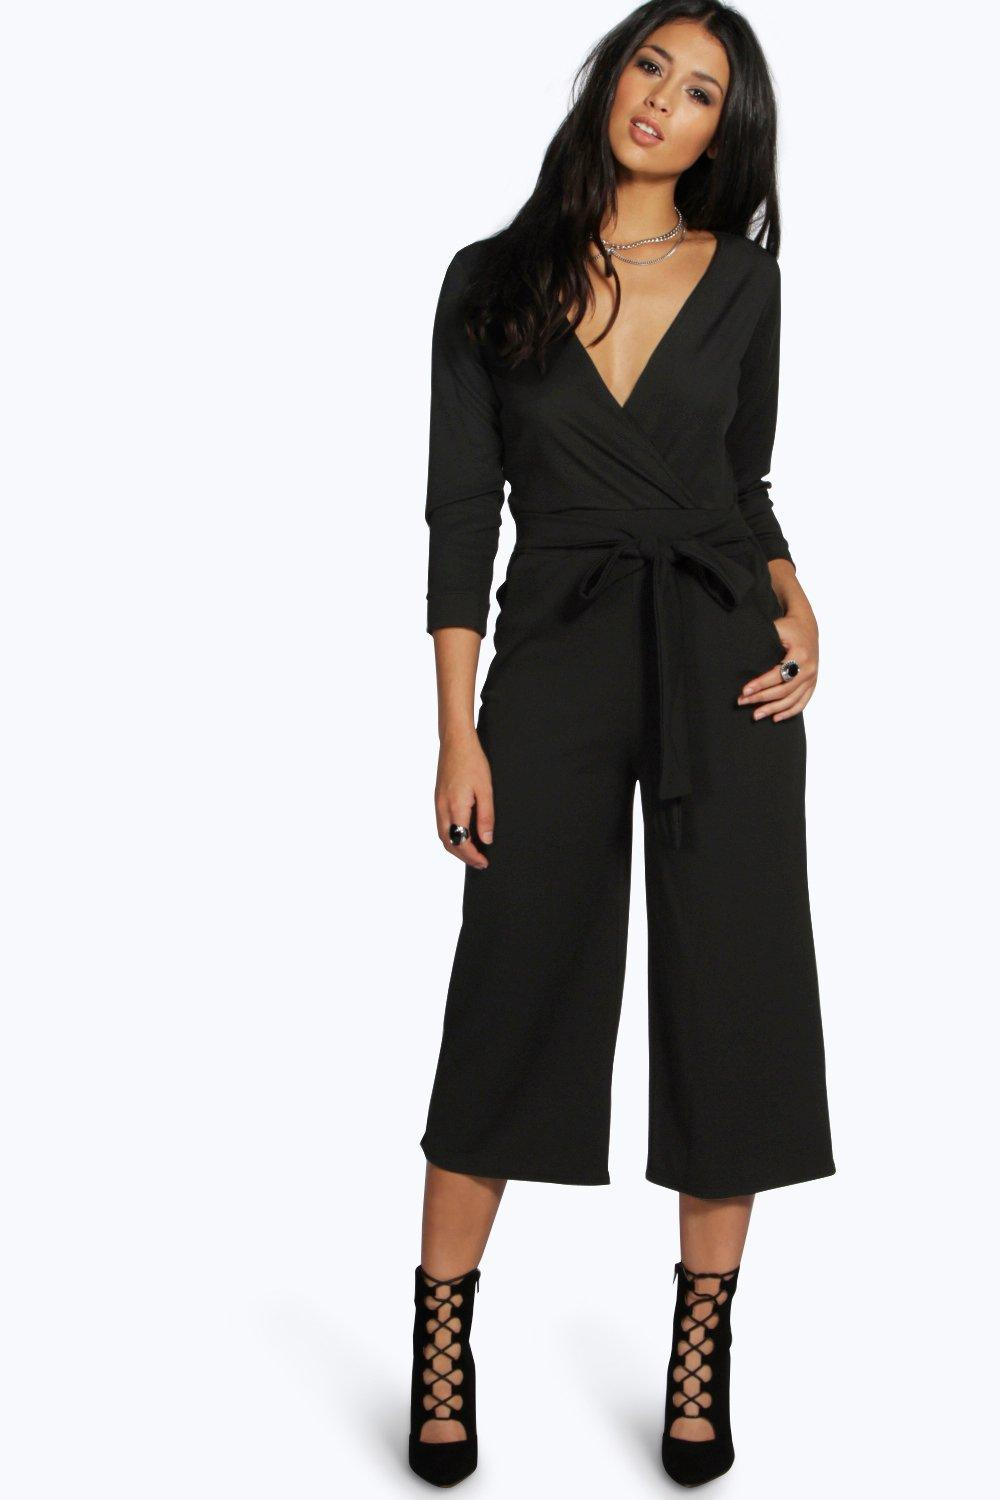 Shop our fab range of jumpsuits and playsuits for women at heresfilmz8.ga Order online now for free next day delivery with click and collect. Shop our fab range of jumpsuits and playsuits for women at heresfilmz8.ga Order online now for free next day delivery with click and collect.